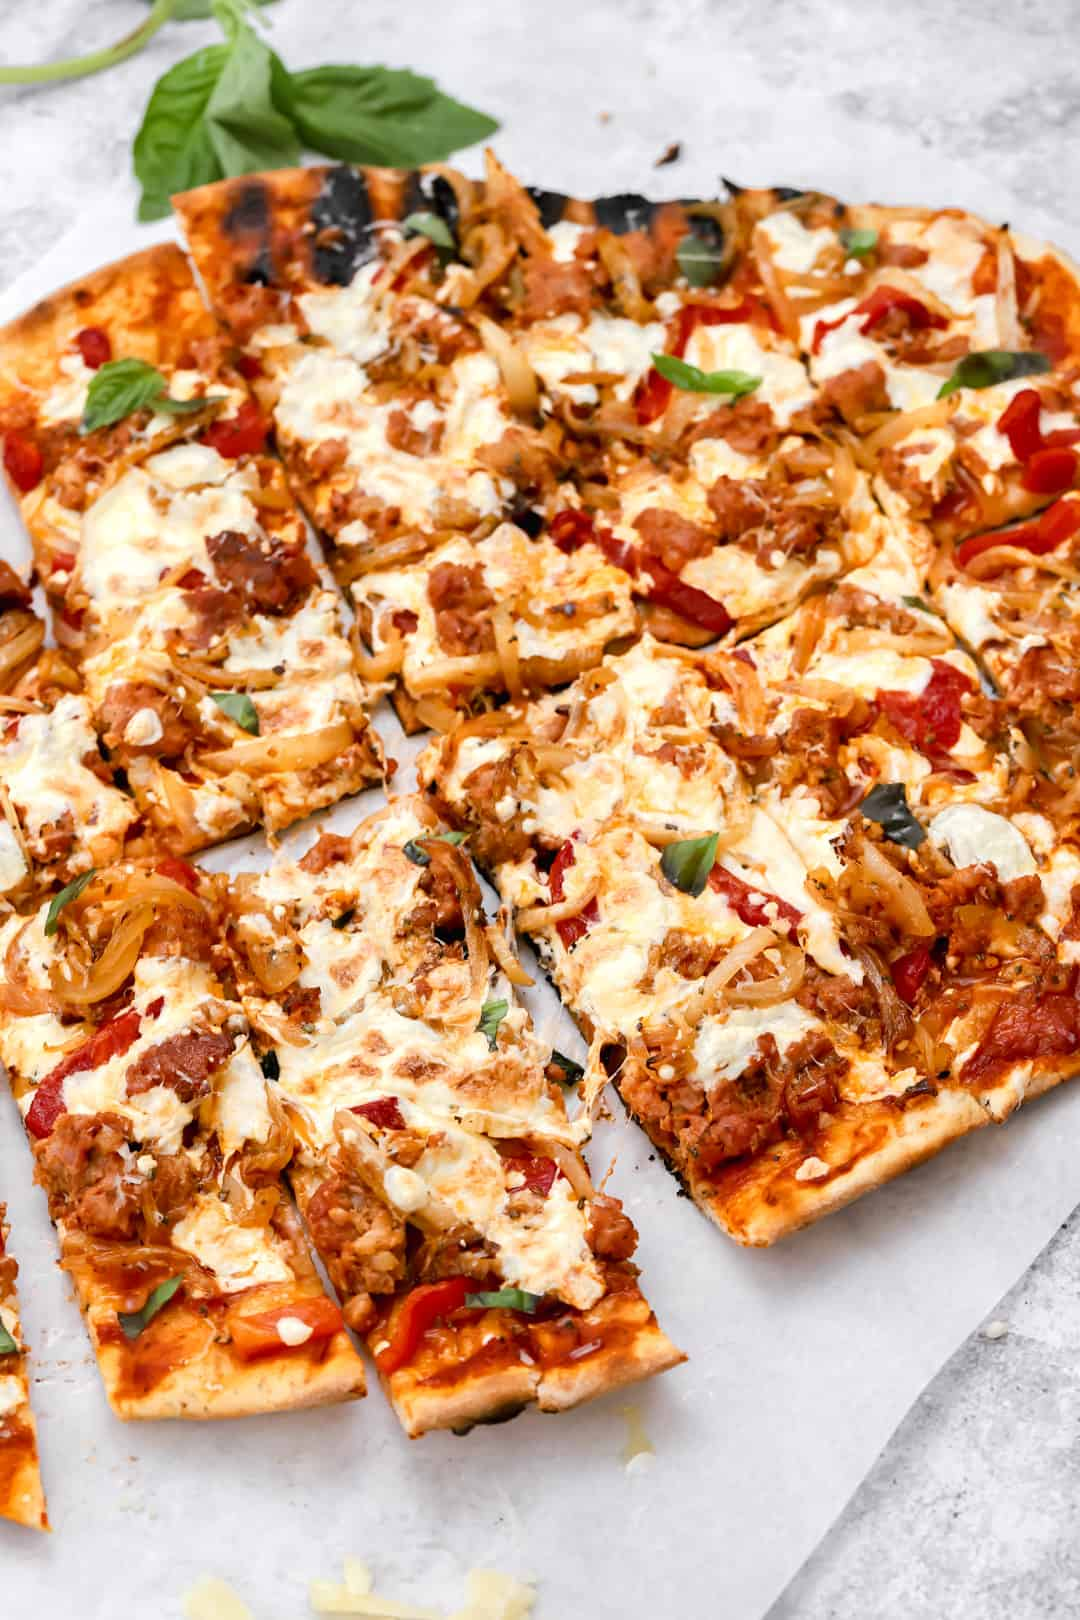 Grilled pizza with sausage fennel and onions